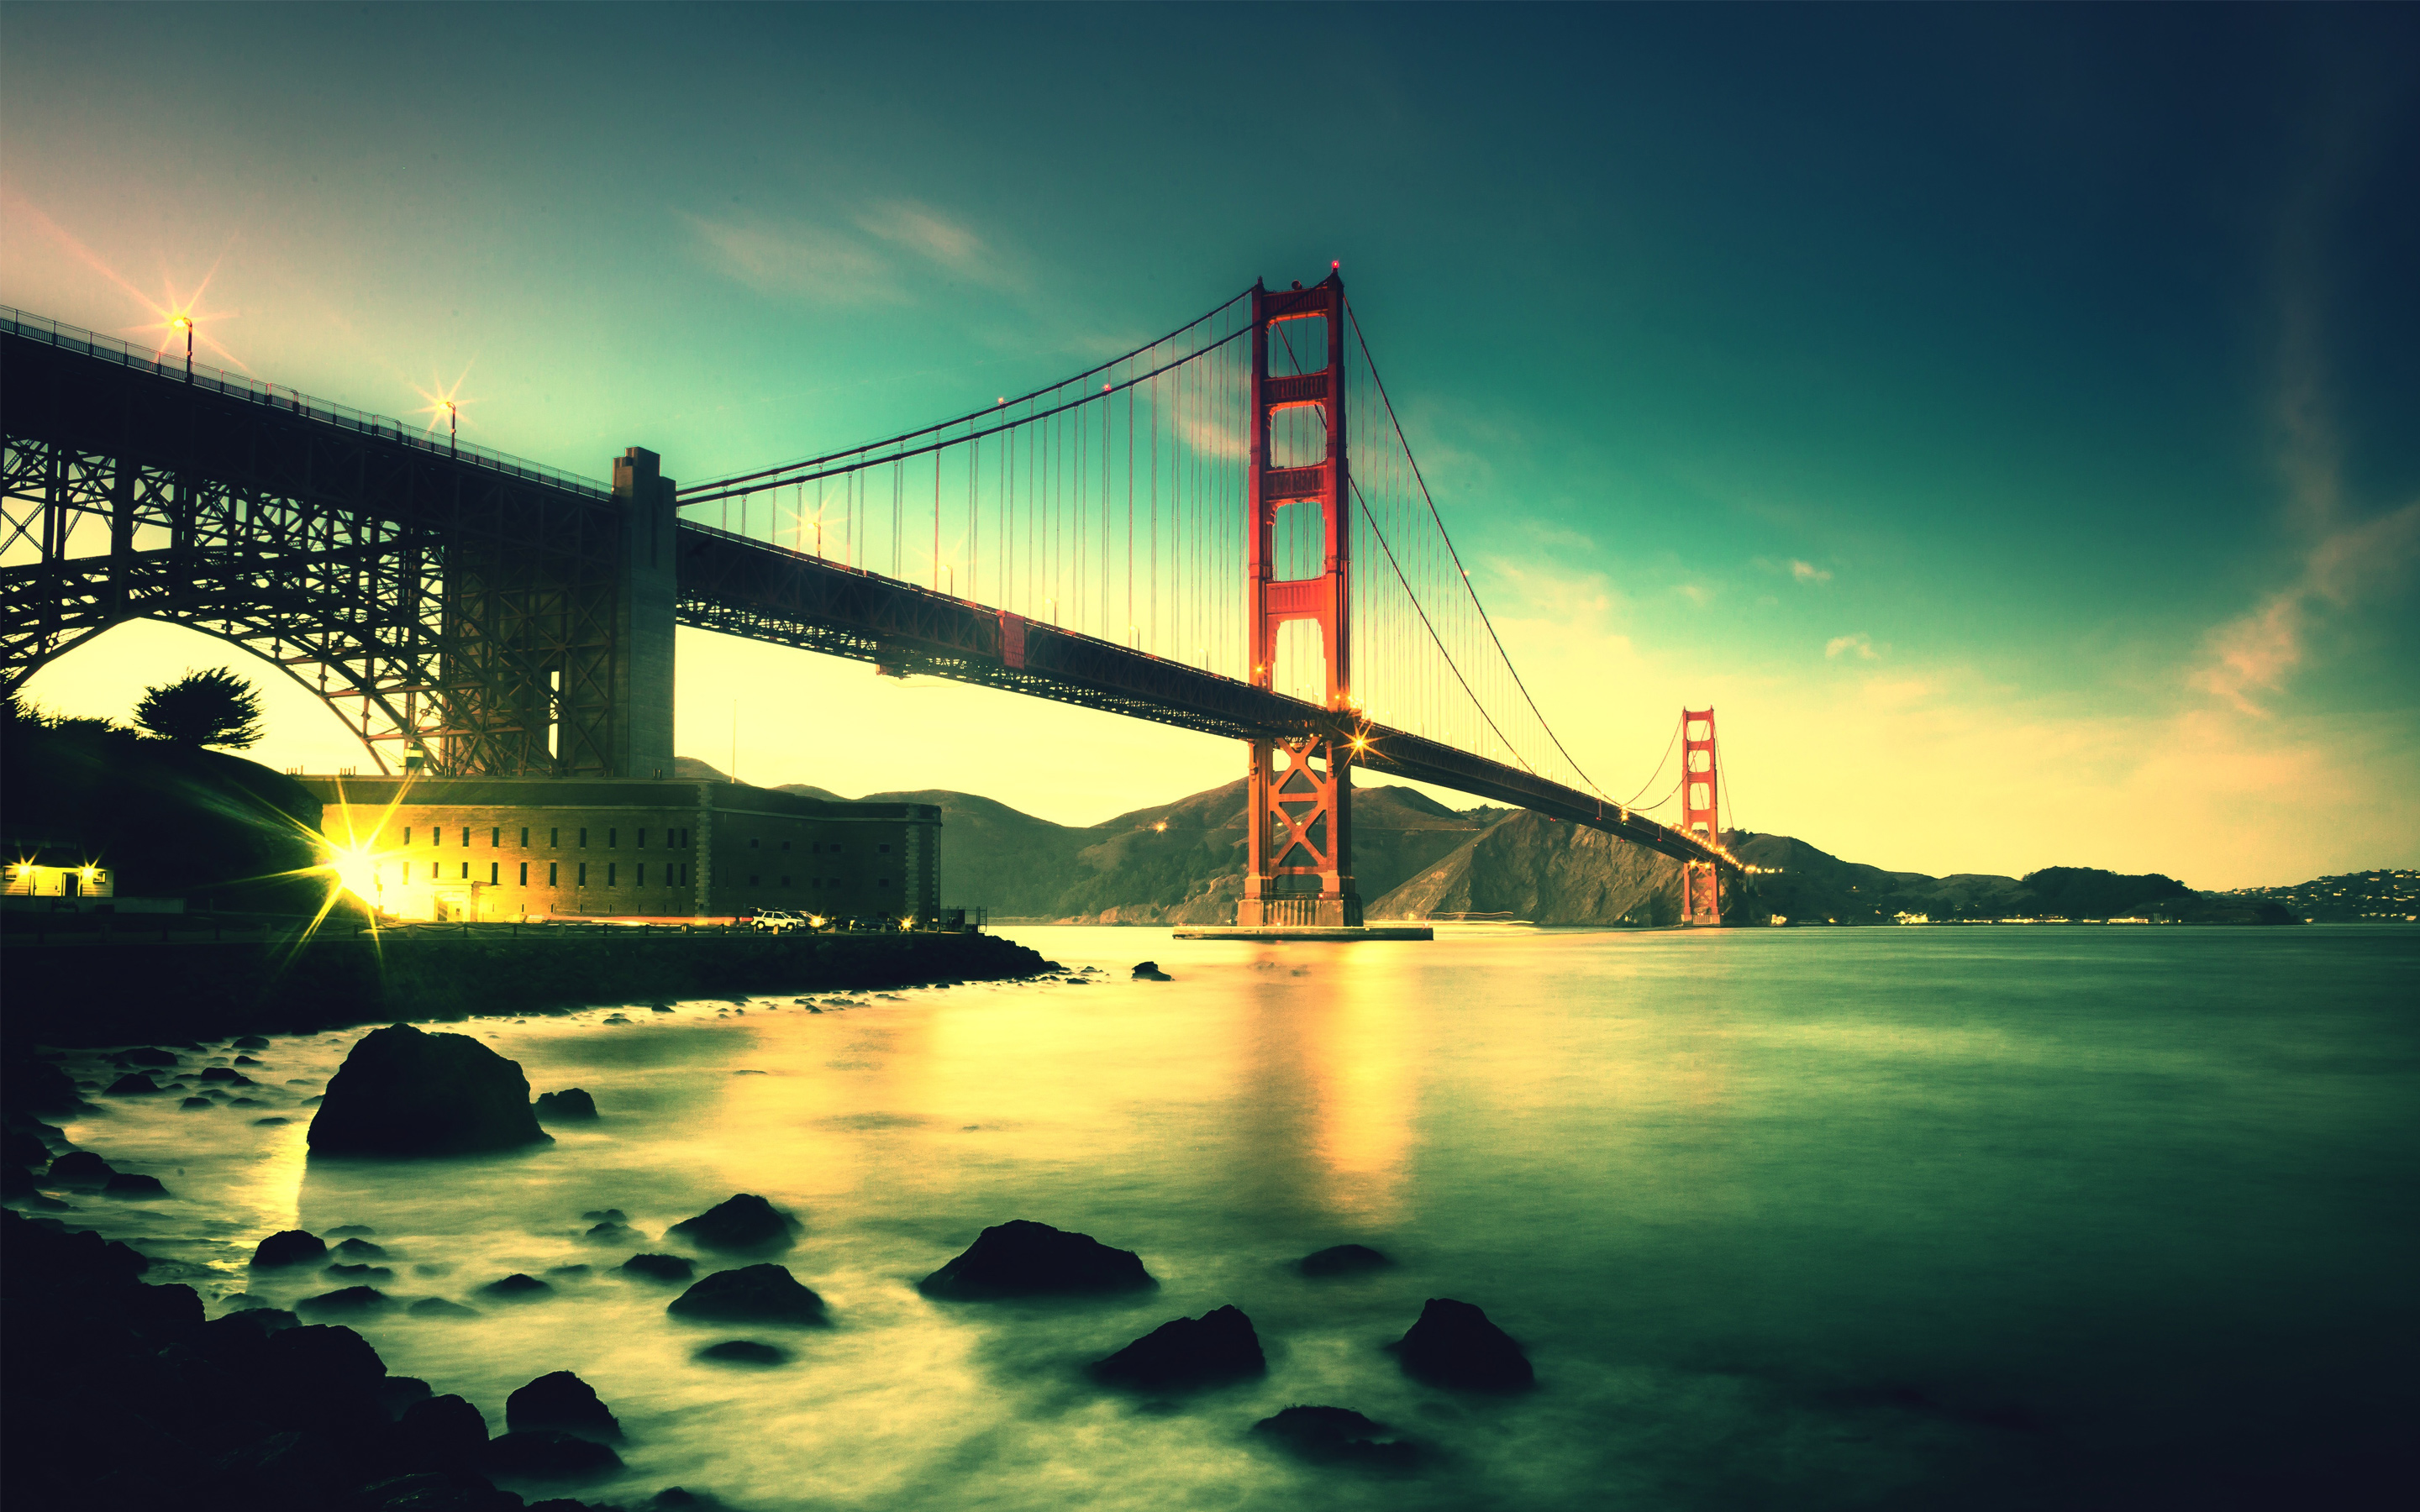 Golden Gate Bridge 5K wallpaper